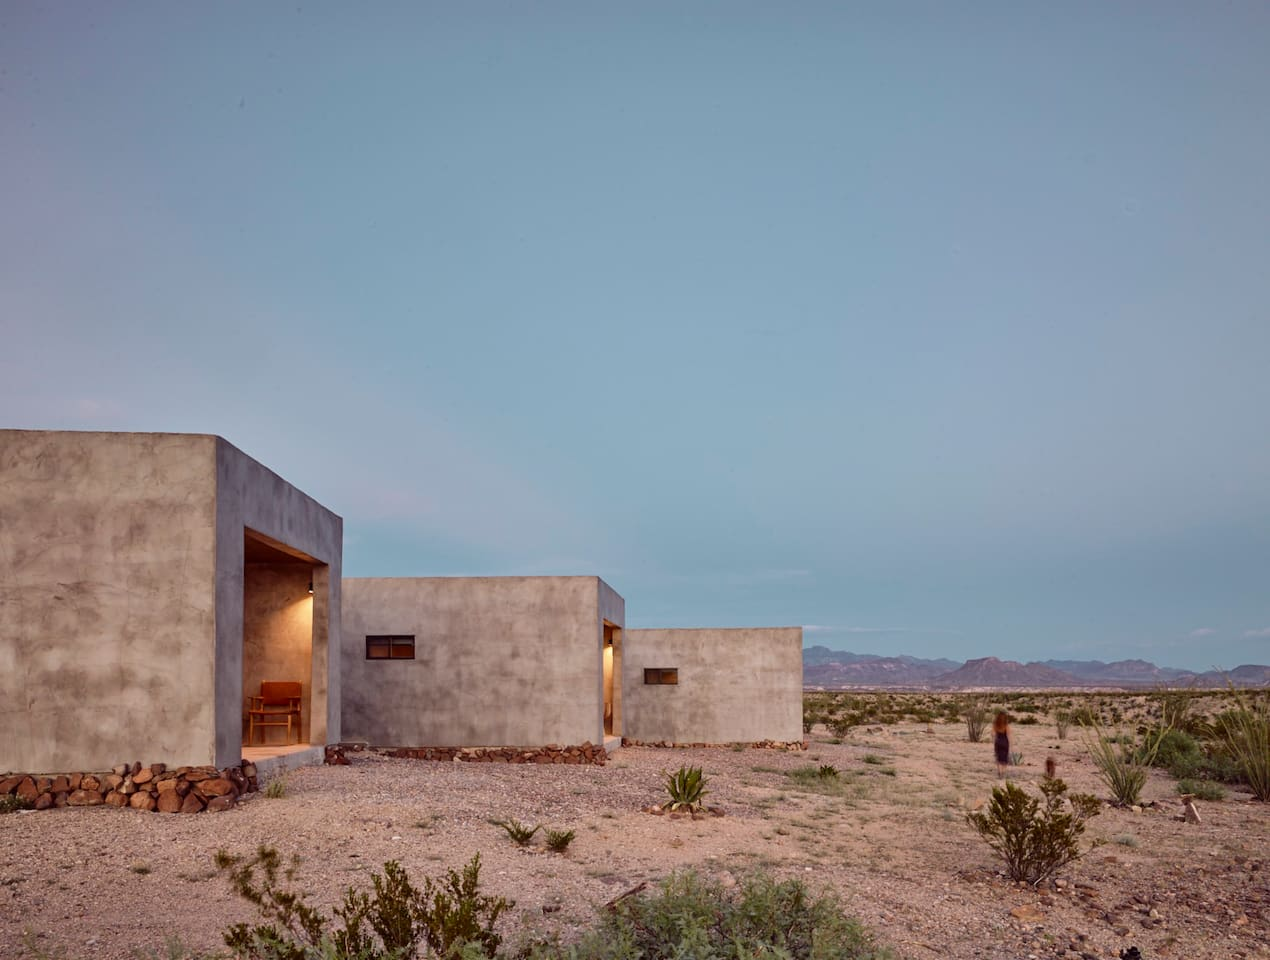 Exterior Shot of Casitas No. 11, No. 10 & No. 9 at dusk on the Willow House Property.